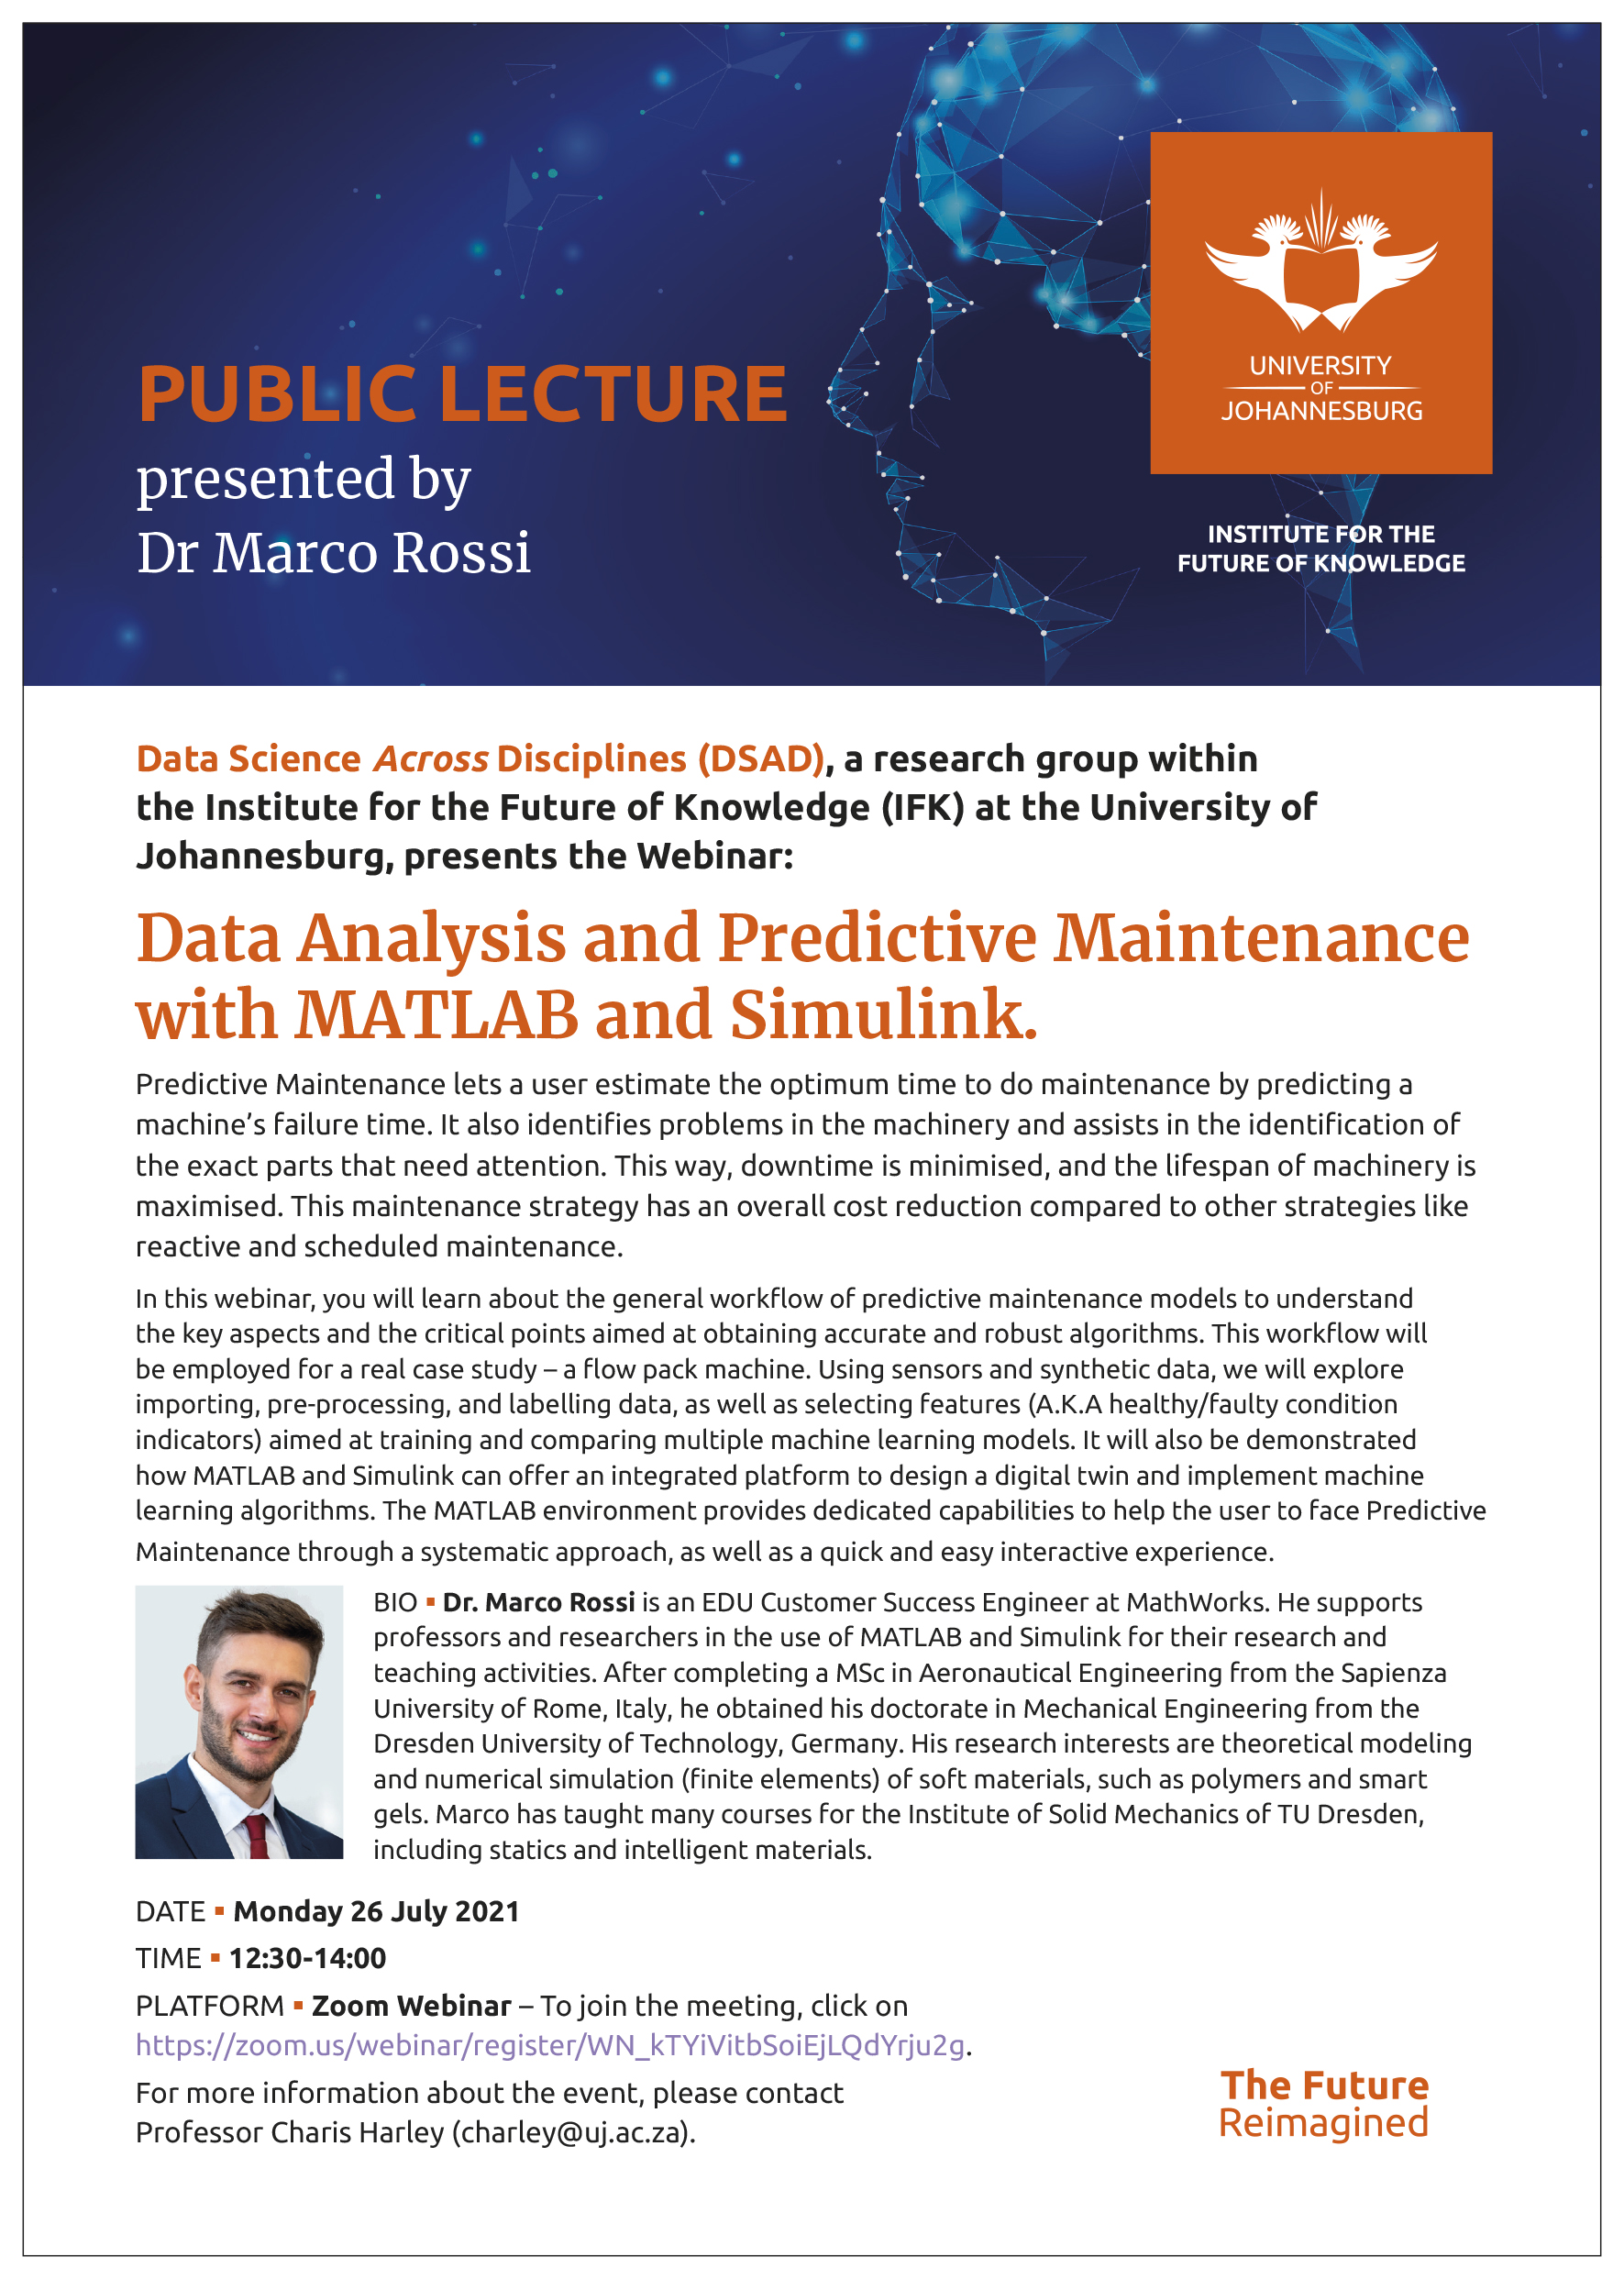 Webinar: Data Analysis and Predictive Maintenance with MATLAB and Simulink